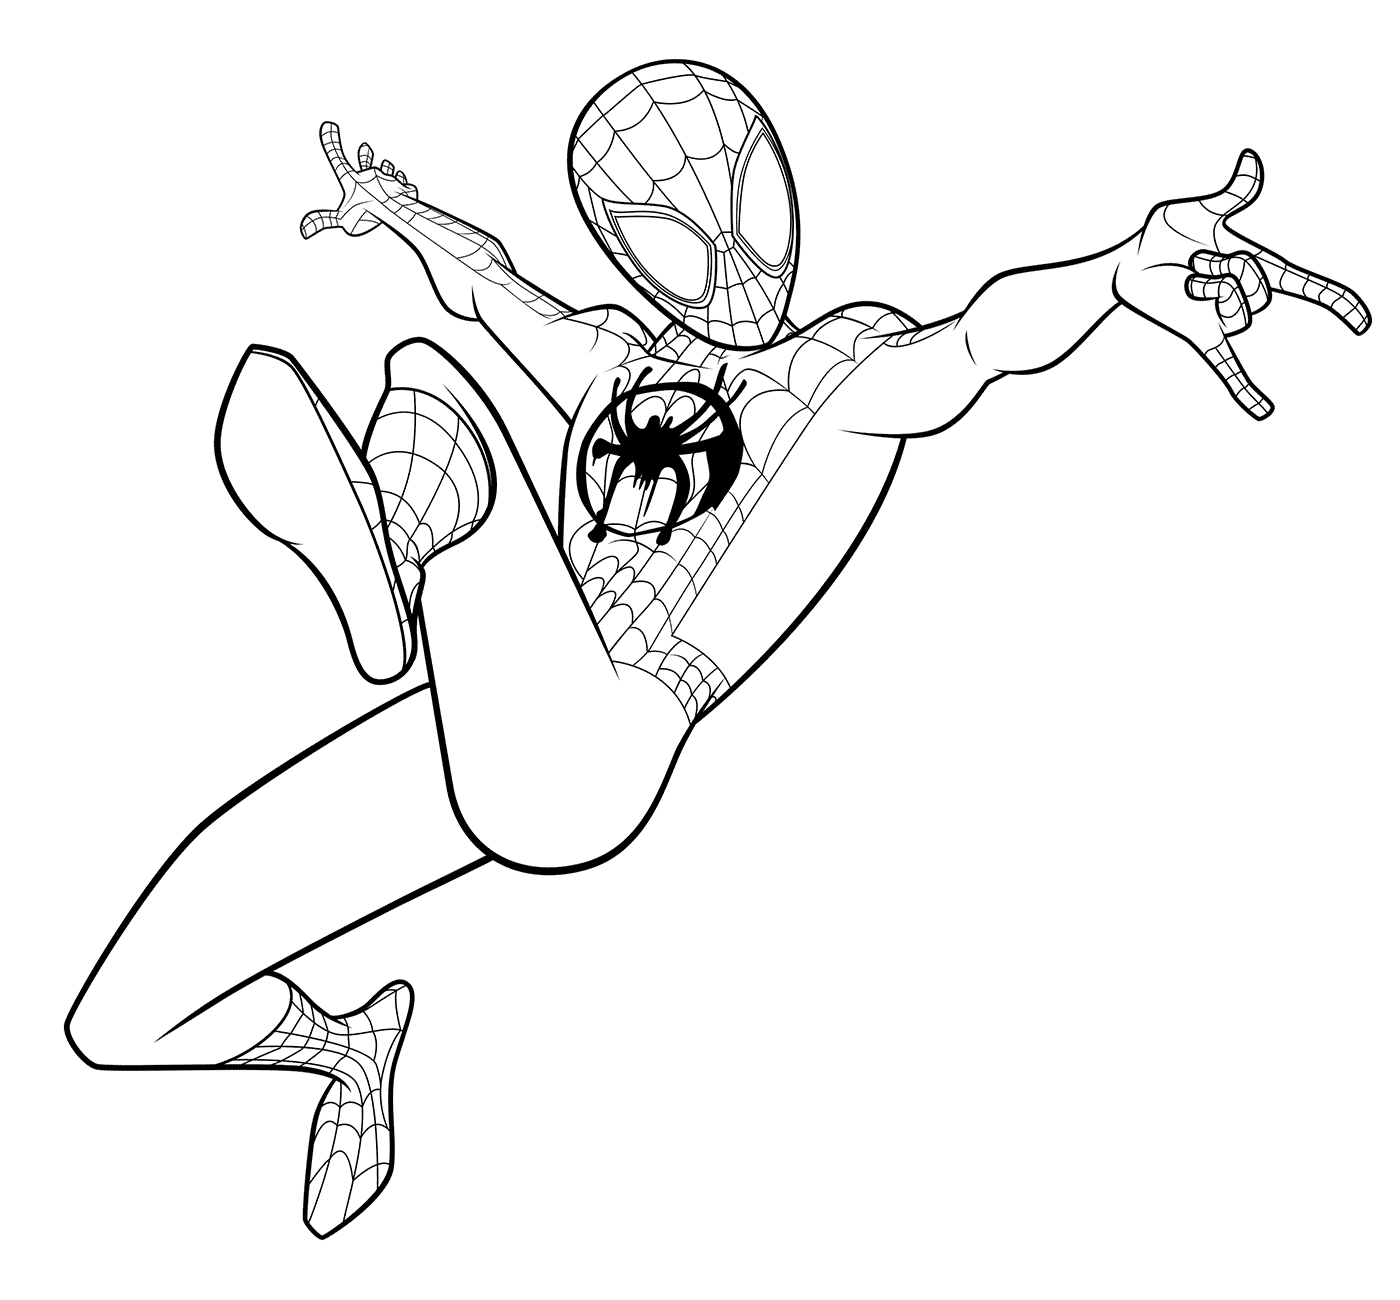 Miles Morales Spiderman Coloring Page